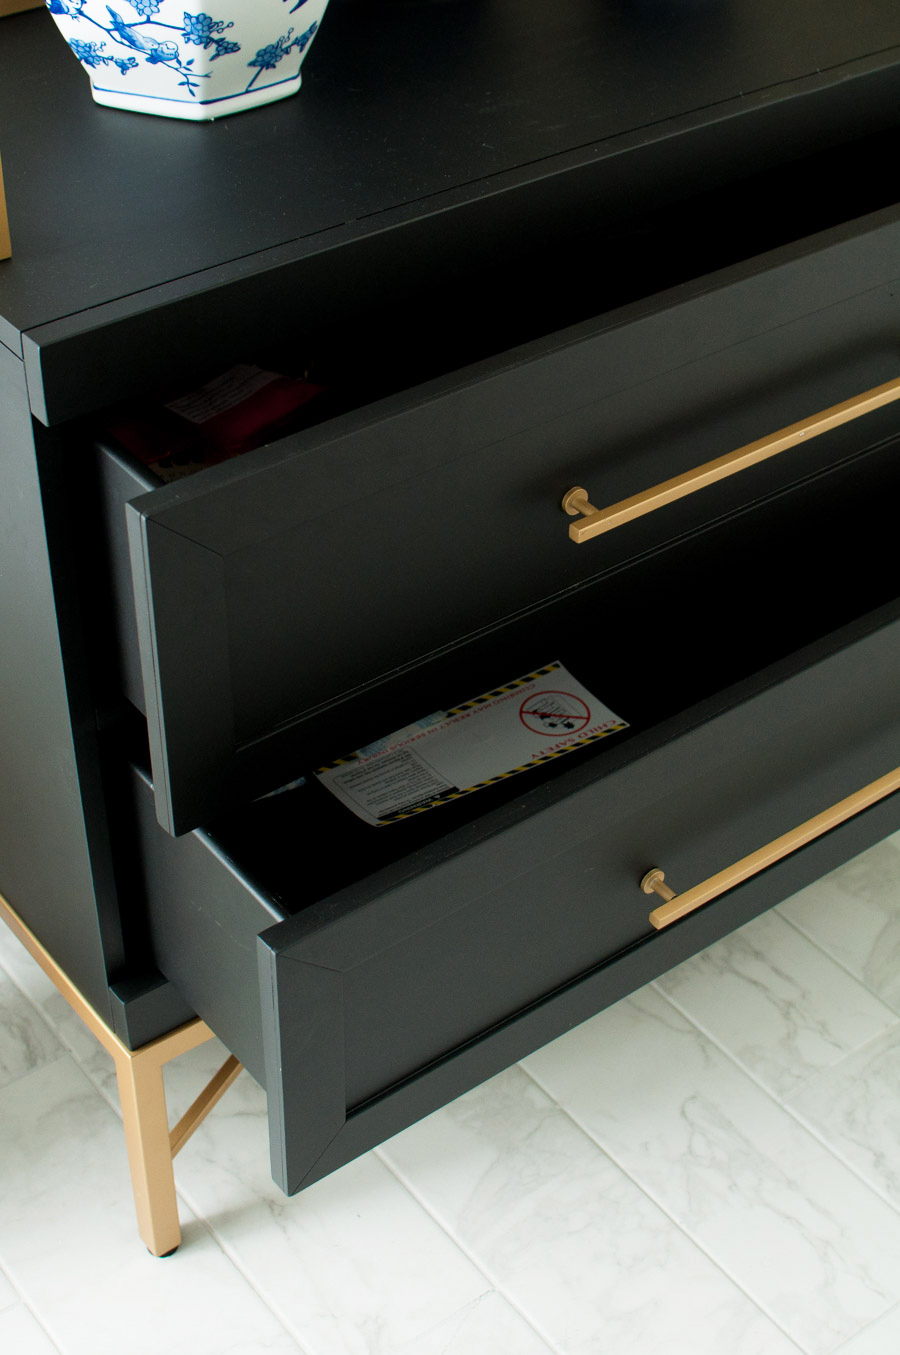 A gorgeous black and gold etagere or bookshelf from HomeGoods.